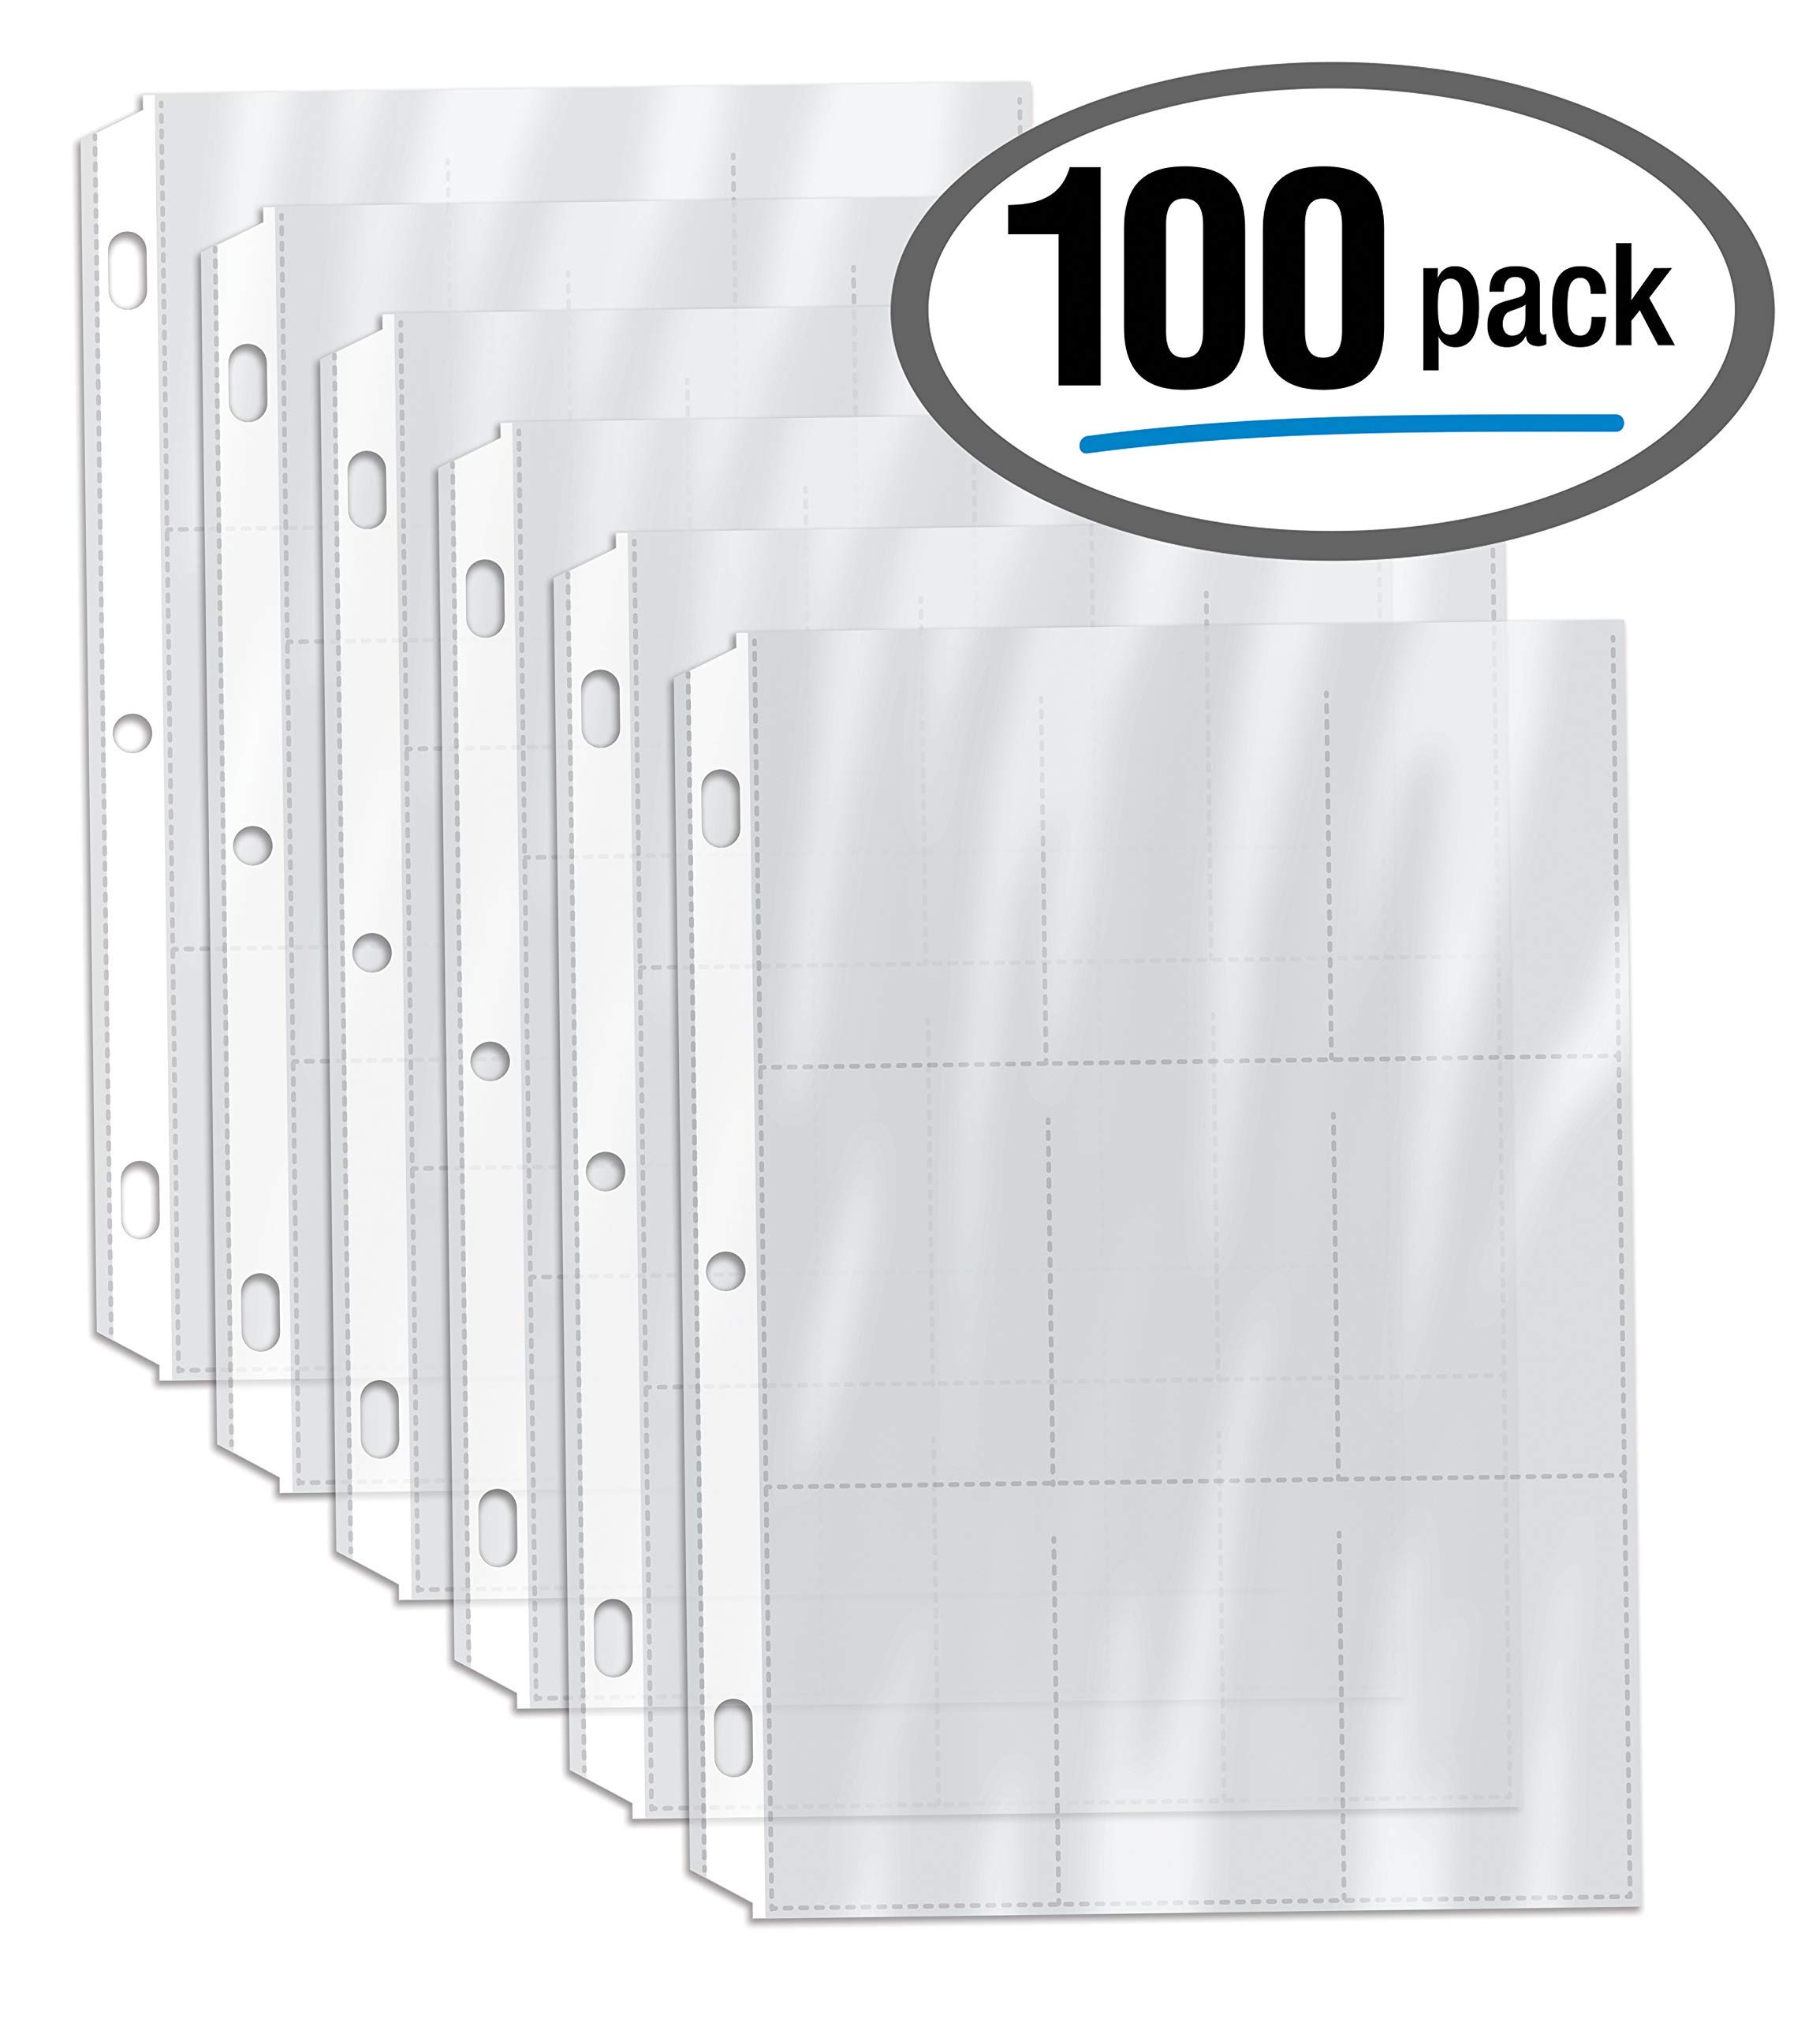 100/Box Clear Heavyweight Trading Card Sleeve Pages, 9 Pockets Per Sheet, 900 Pockets, 3 Ring Binder Sheets, by Gold Seal, 100 Count by GOLD SEAL